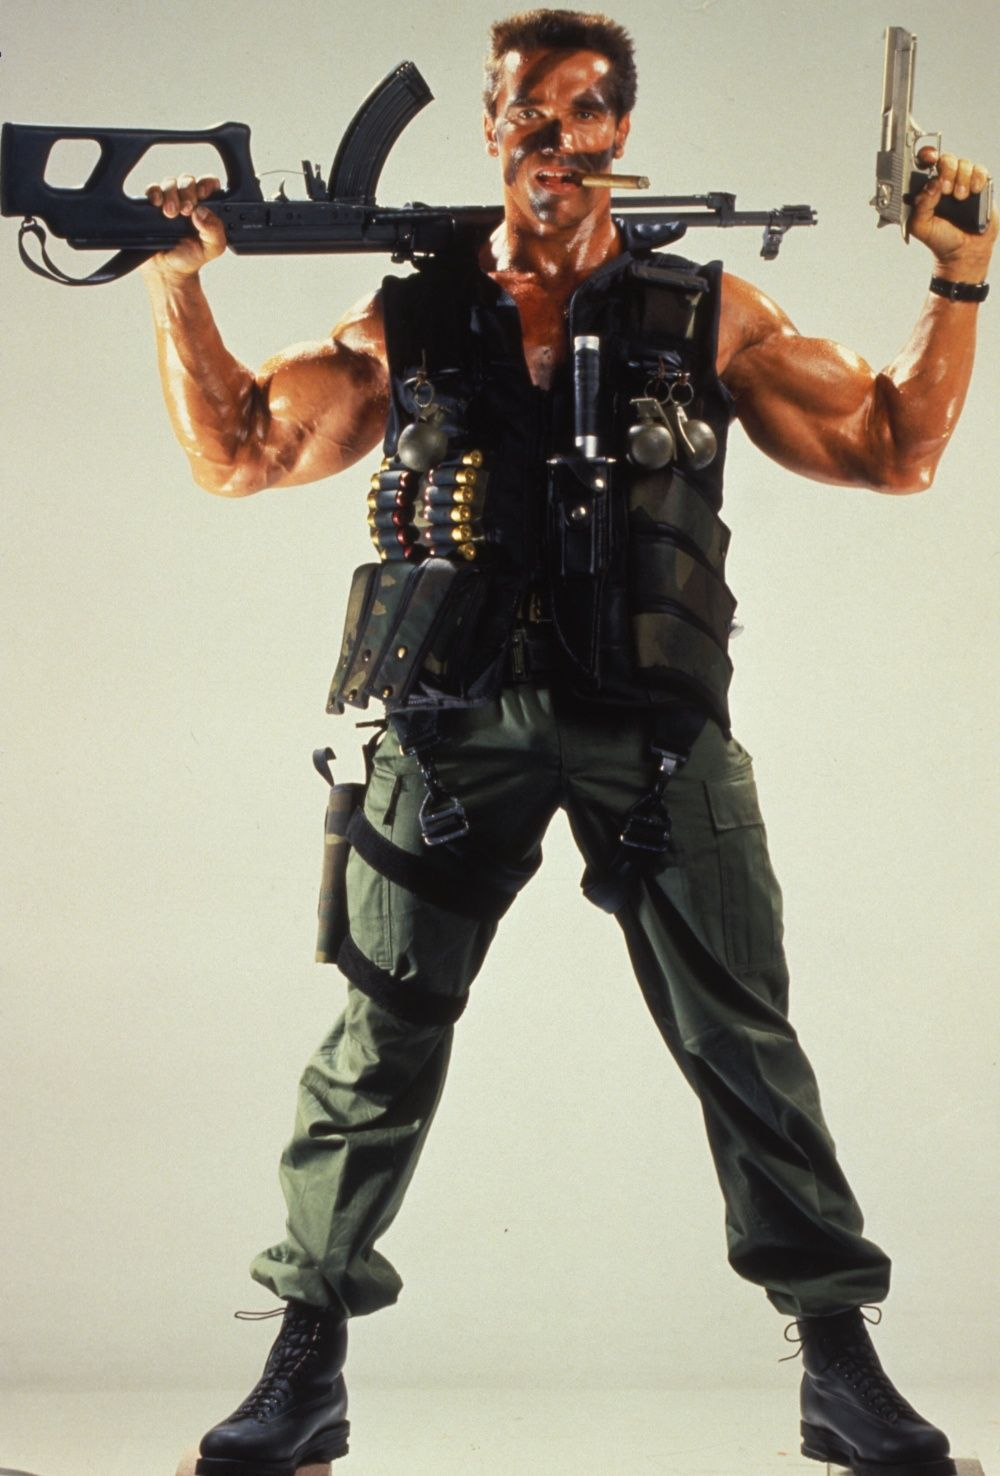 Pin by Lazerbrain on Soldiers and Military Warriors | Arnold